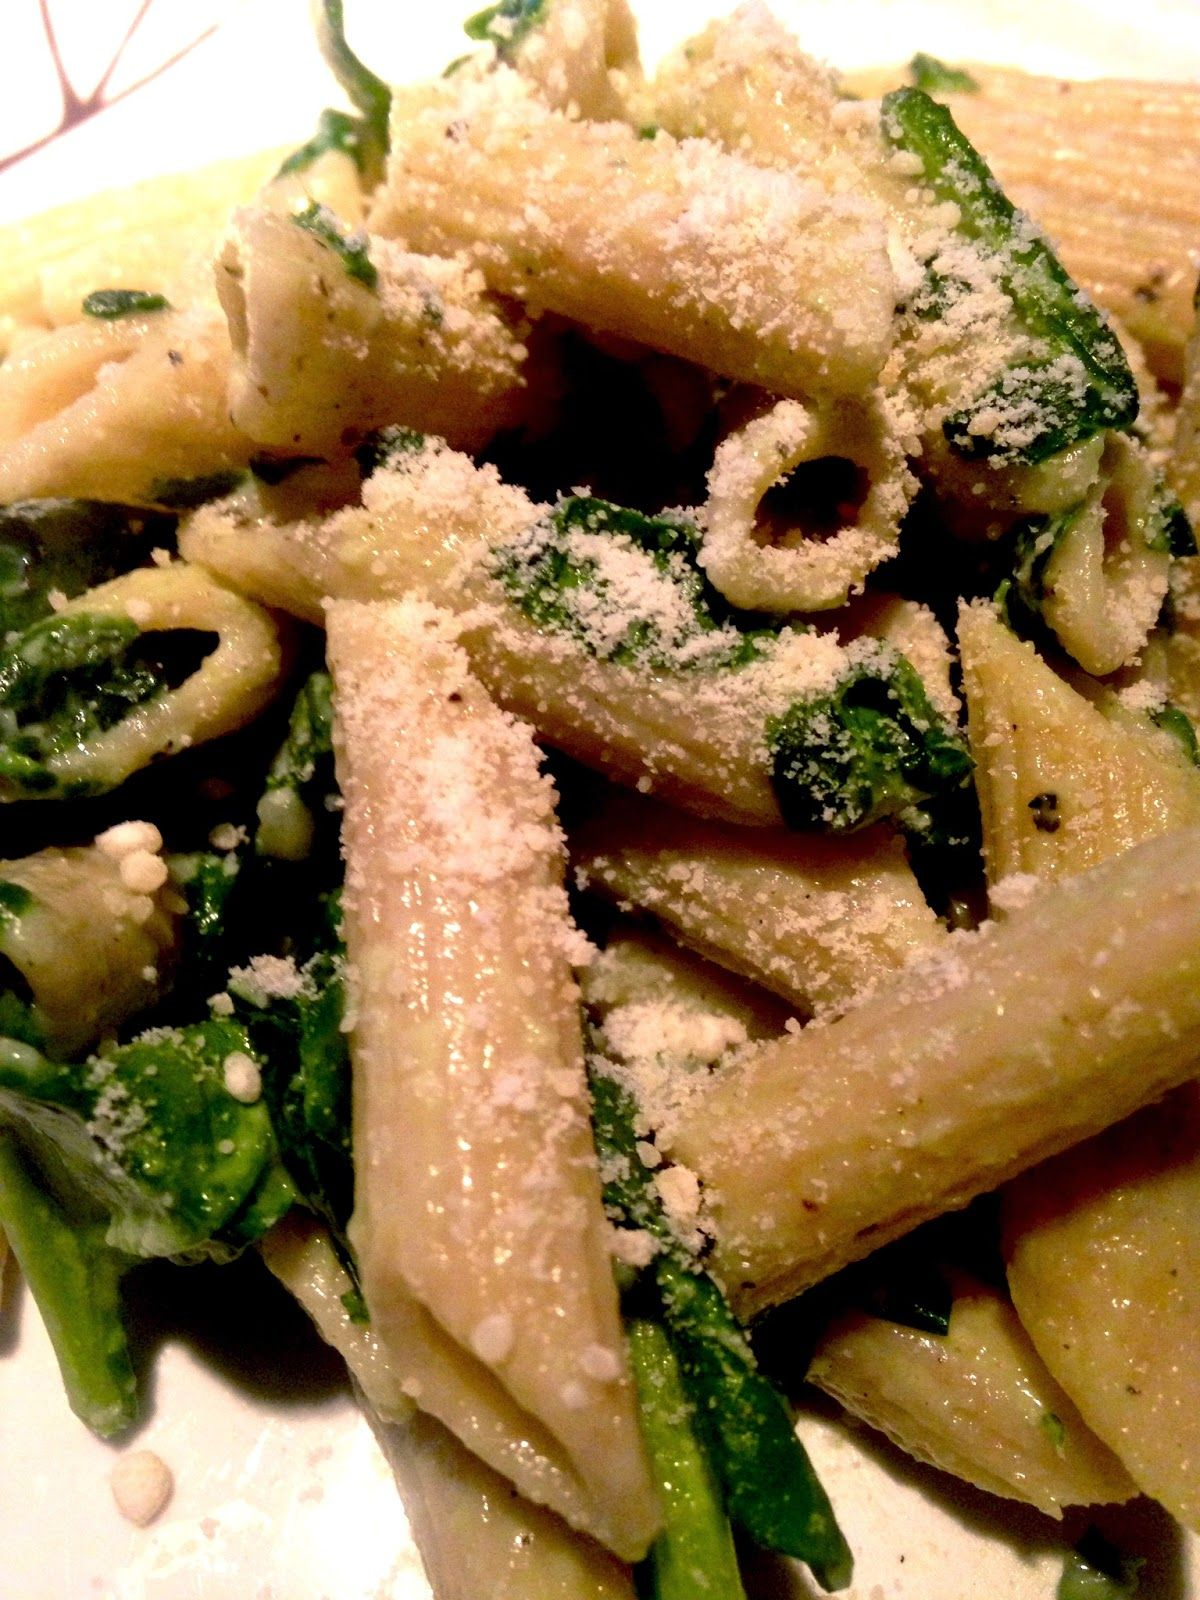 Easy, quick, and cheap dinner option - whole wheat penne with spinach sauce! My favorite pasta dish ever!